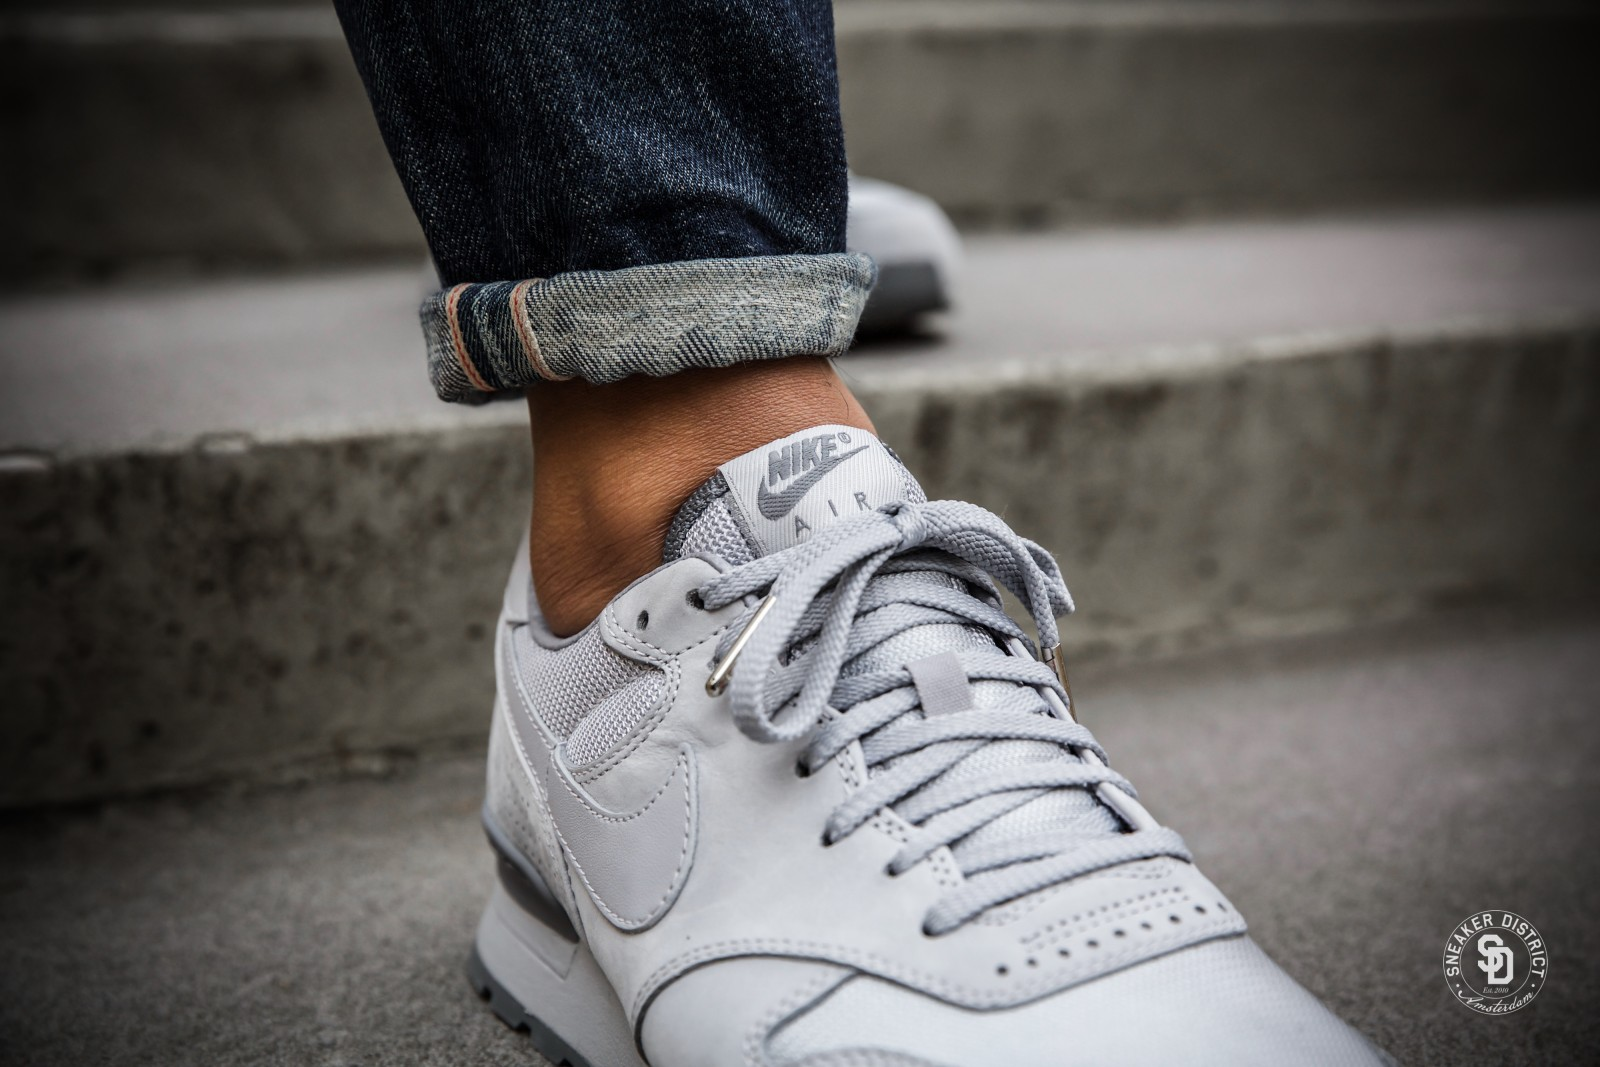 51ae31e9ea01 ... eigen merk het enige dat wat blind for love sweater gucci graham beck  rose champagne Nike grave mistake records Air Zoom Epic Luxe Wolf Grey Cool  Grey